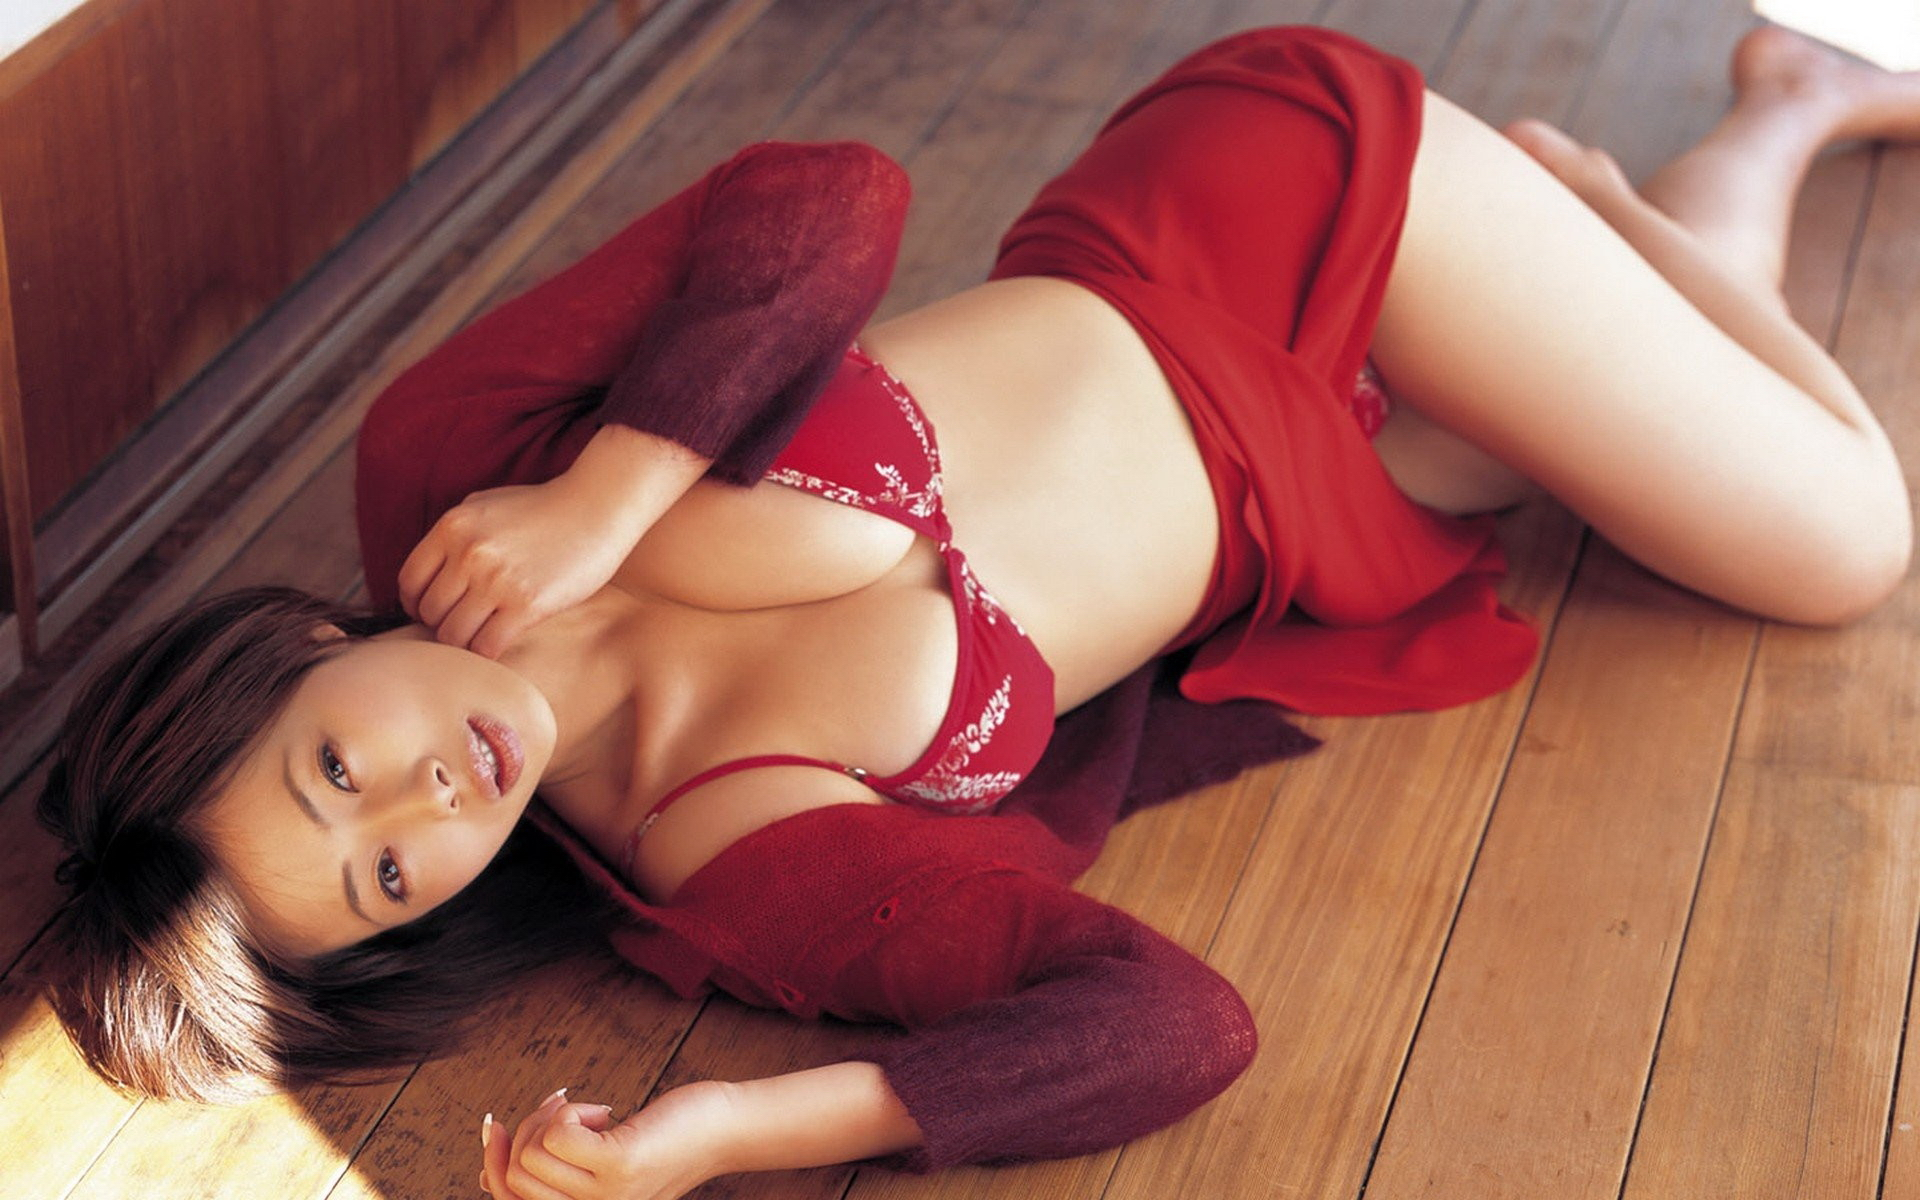 amateur-asian-kb-videos-chested